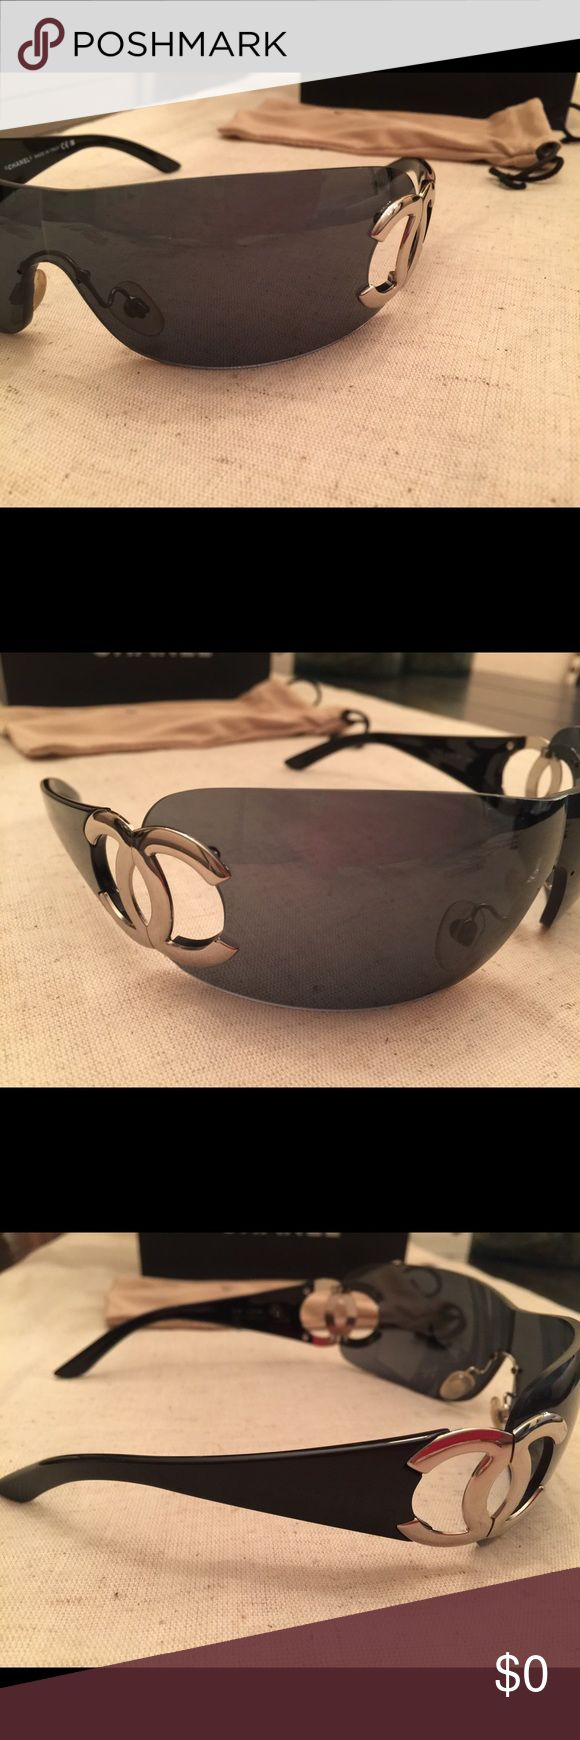 Authentic CHANEL Sunglasses Black with Silver CC NOT FOR SALE: ADDITIONAL PHOTOS CHANEL Accessories Glasses